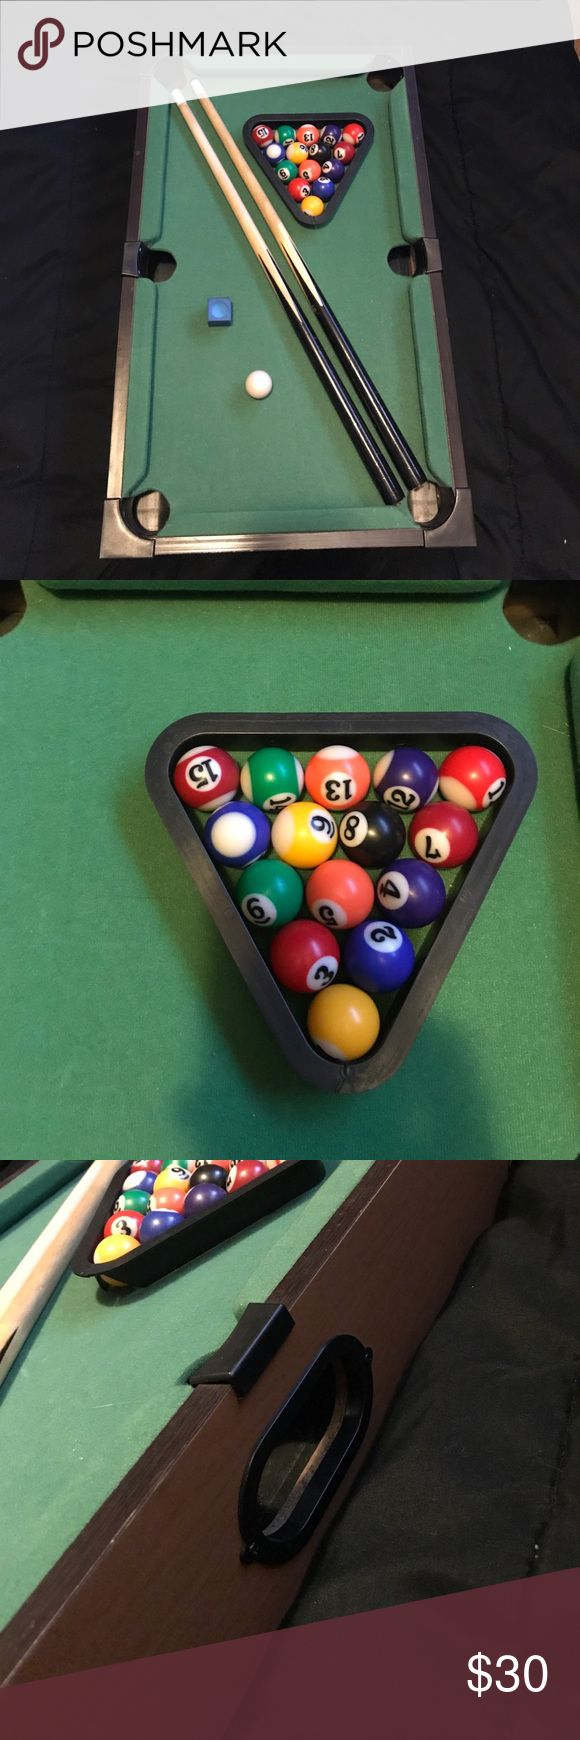 Full tabletop pool table Full tabletop pool table. Includes ( full set of pool balls, cue ball, two pool sticks, stick chalk) Other